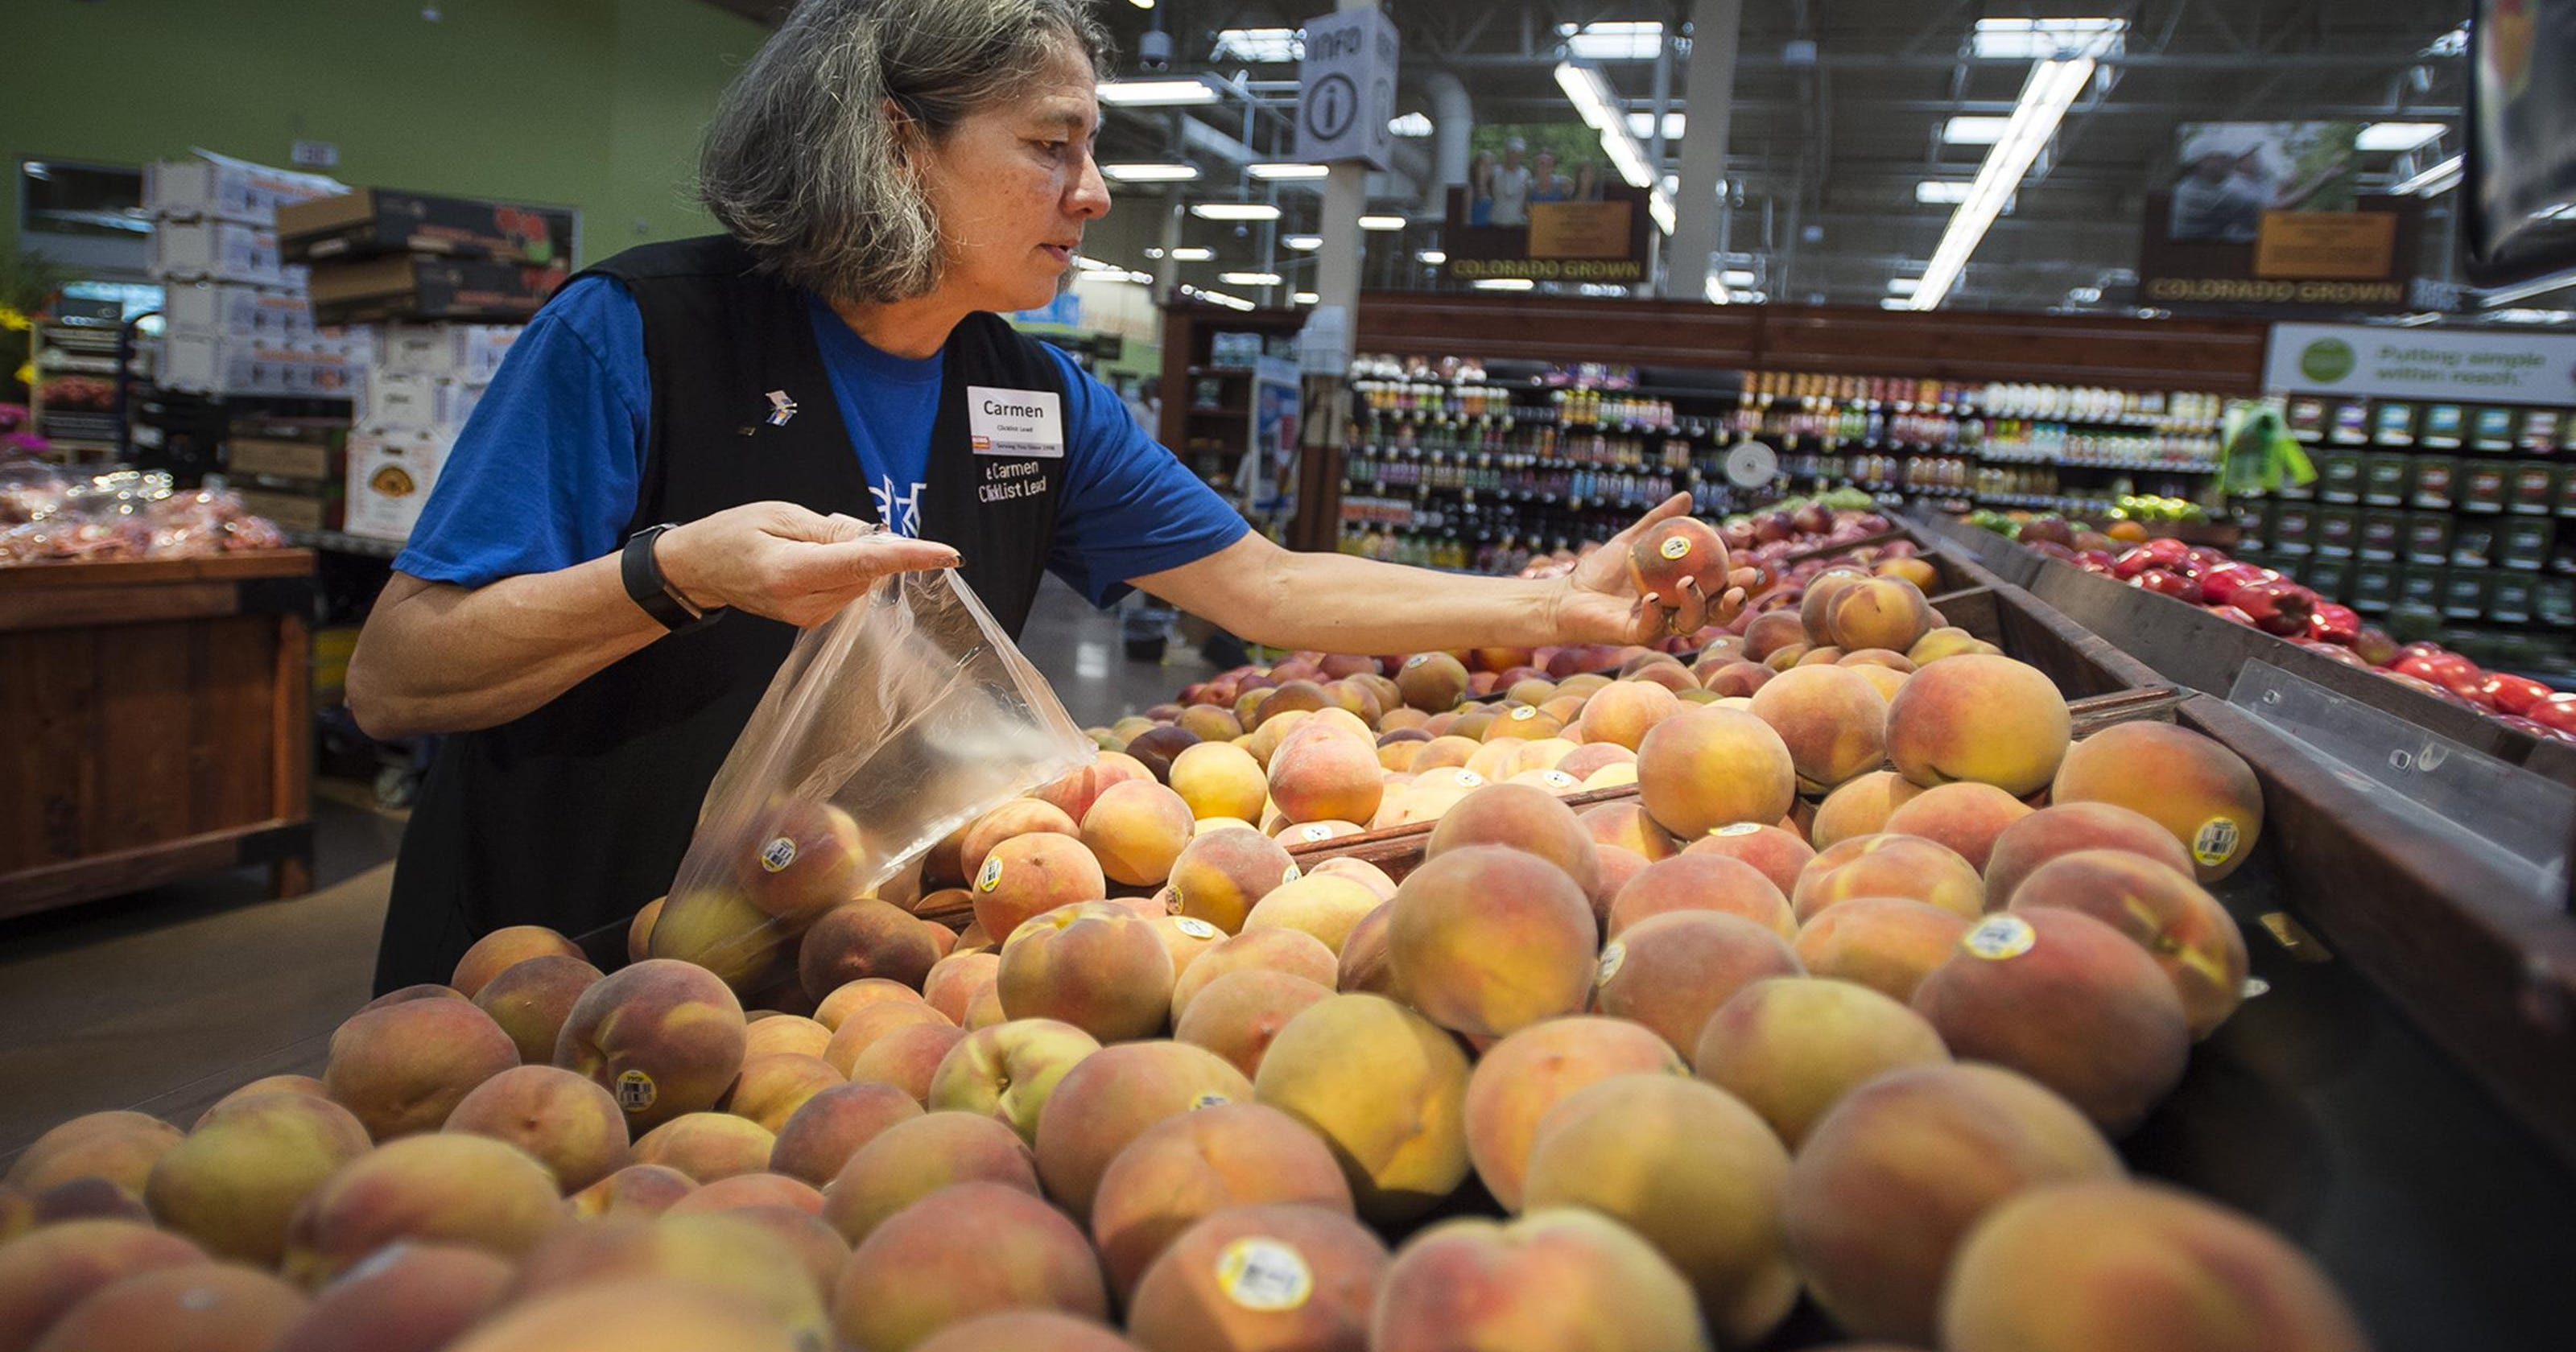 New grocery delivery service pushes Fort Collins shopping